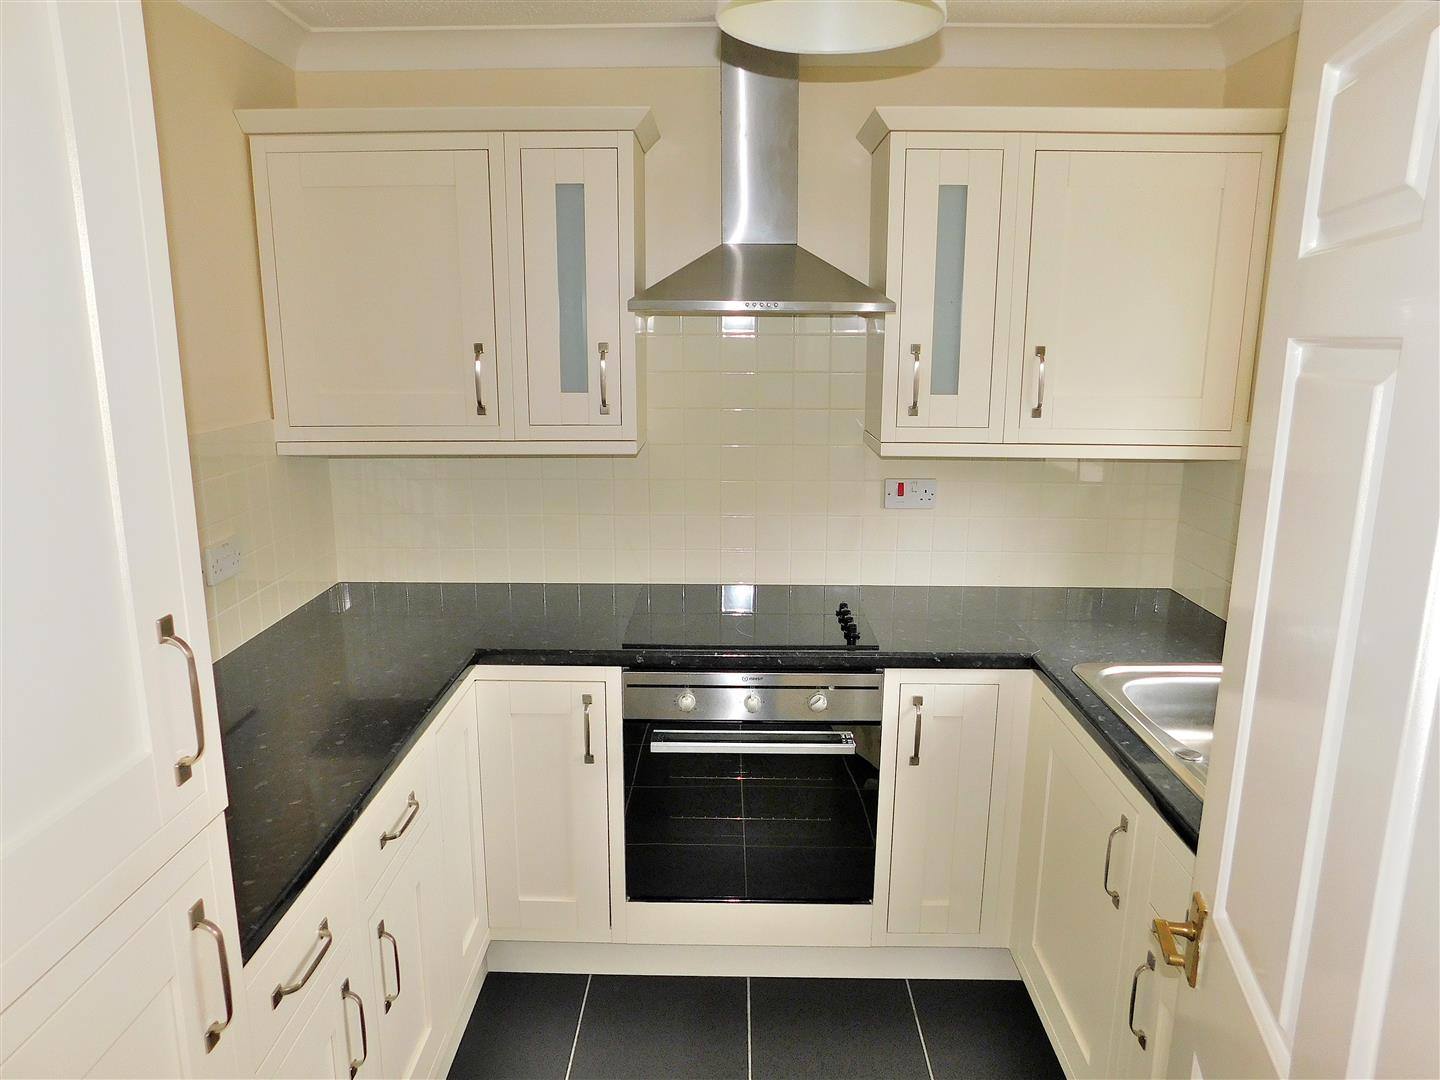 2 bed flat for sale in King's Lynn, PE30 1EG  - Property Image 4